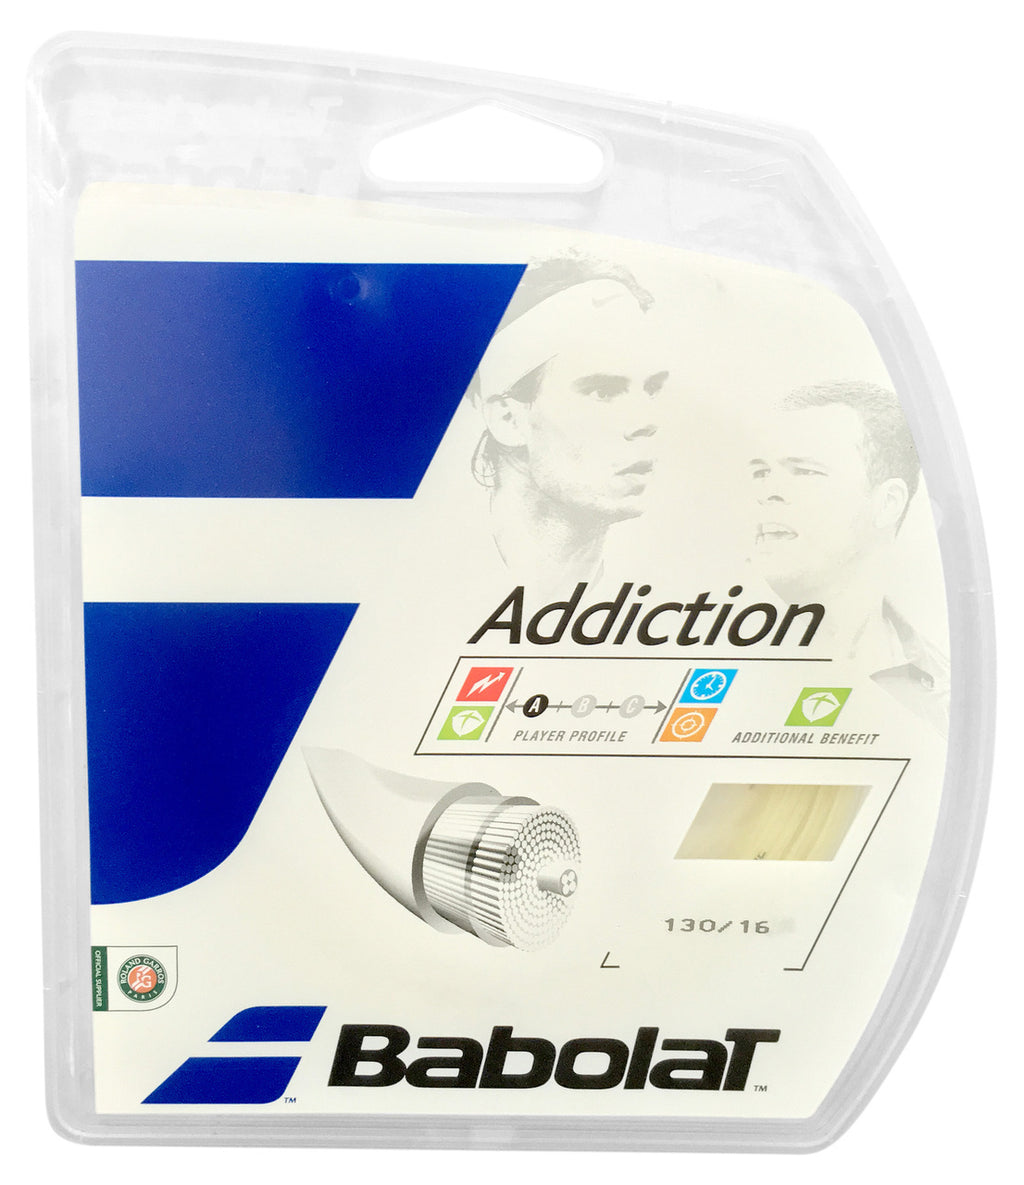 Babolat Addiction 16 Adult Size Tennis Restring